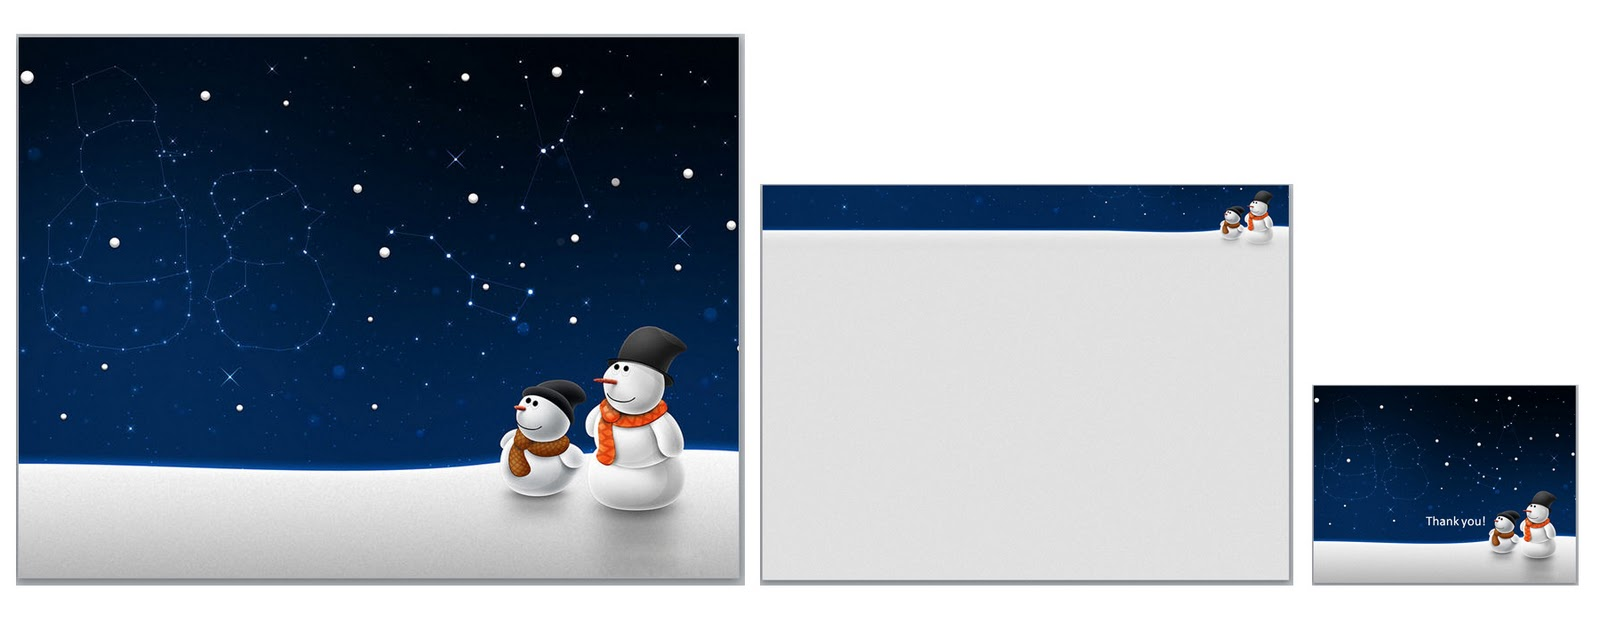 free download christmas 2011 powerpoint templates - ppt garden, Powerpoint templates